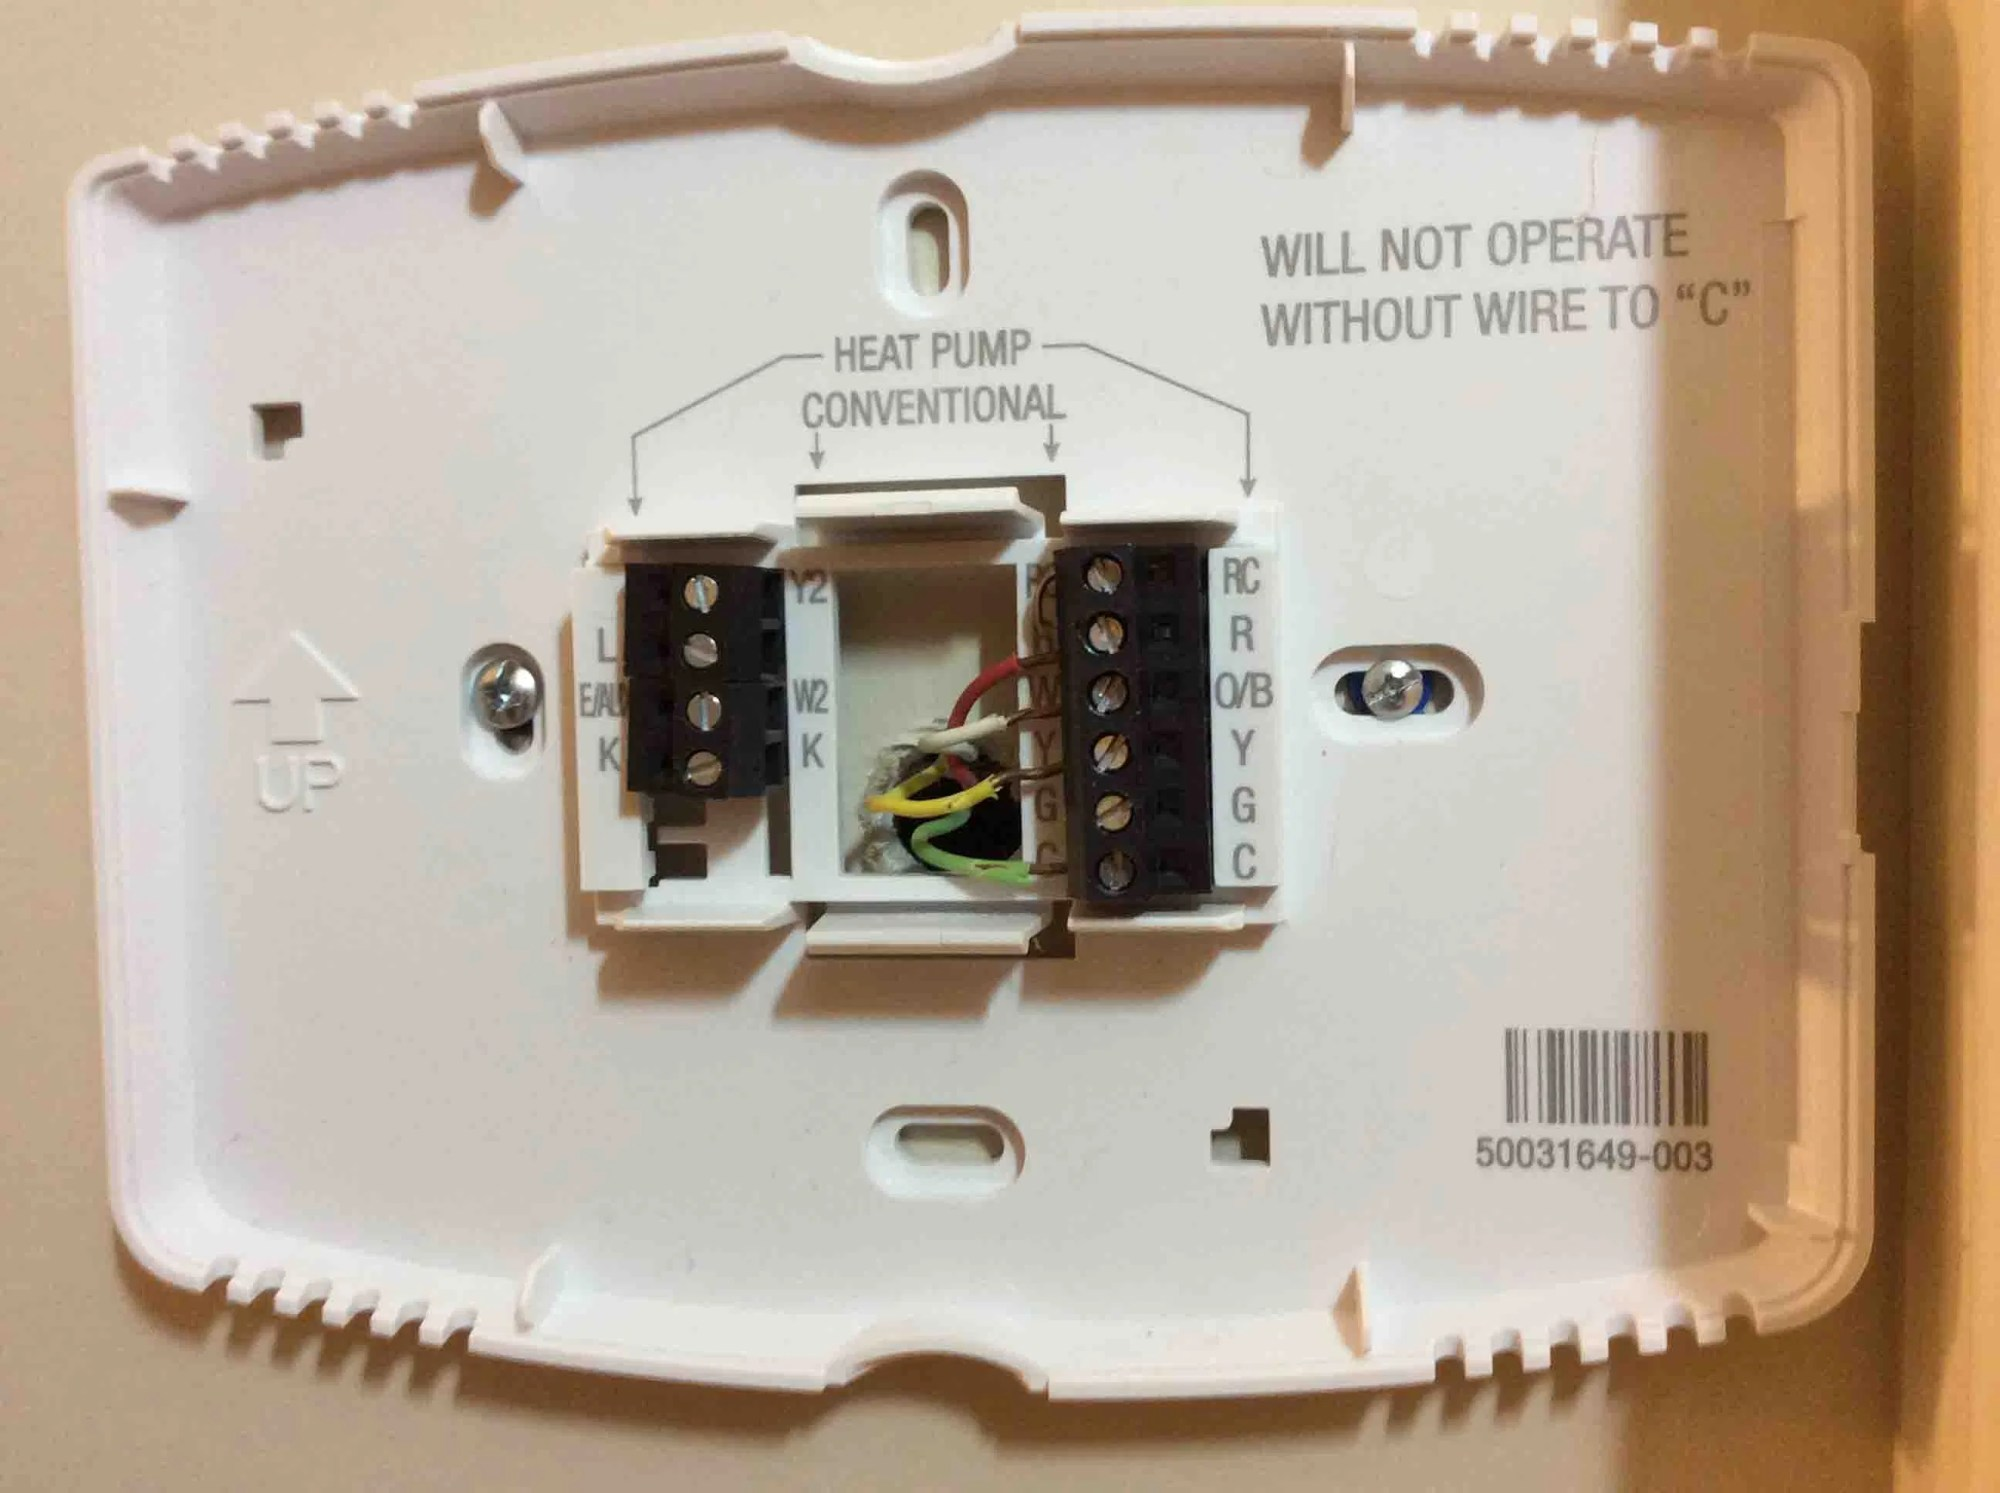 hight resolution of honeywell thermostat wiring diagram 4 wire picture of the wall plate for a 4 wire